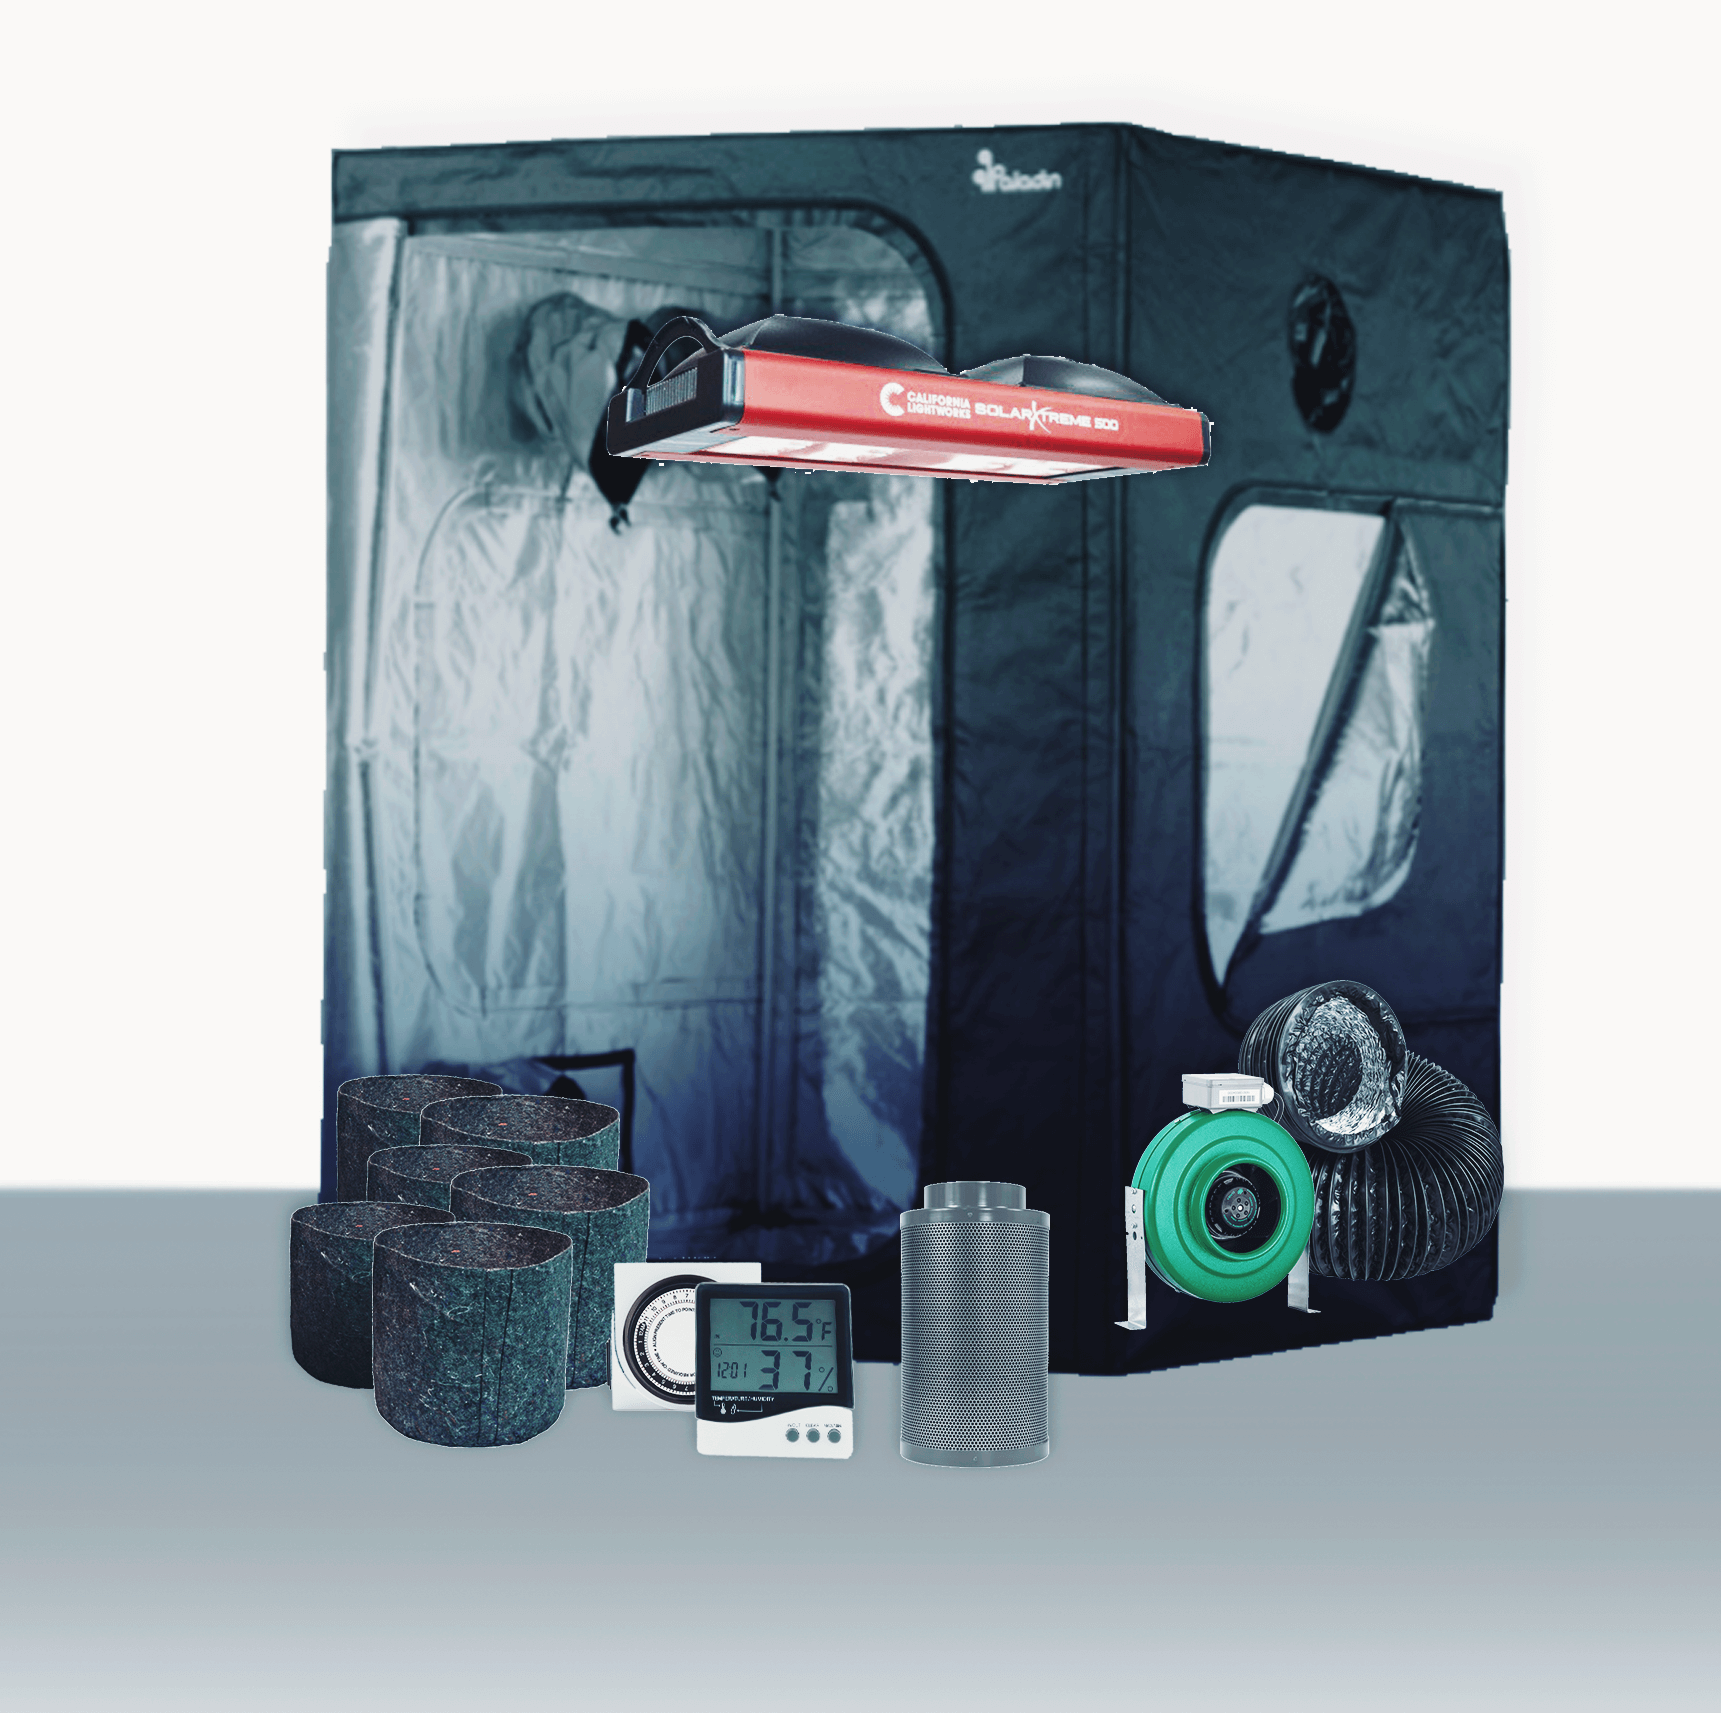 """5' x 5' Grow Room 400W CLW COB LED Coco Complete Grow Tent Package 5' x 5' Grow Room 400W CLW LED Coco Complete Grow Tent Package This complete grow room tent package includes everything that you need to get started with discretely growing at home. Experienced growers designed every aspect of this tent package. They chose the parts of this package to create the best grow experience at an affordable price. Included in this Grow Tent Kit: Plant House Indoor Grow Tent - 5' x 5' x 73  Growers House Carbon Filter 6  x 16  400 CFM Active Air 6 inch In-Line Fan 400 CFM 6 inch x 25' Black Lightproof Ducting w/Clamps Silver Flex Duct Tape -- 5 Yards 2 x Hurricane 6 inch Clip Fan - Classic Series California Light Works SolarXtreme 500 LED Grow Light Grow Crew 1/8 inch Ratchet Light Hanger (Pair) Titan Controls Apollo 8 -- 24 Hour Dual Timer Grower's Edge Large Display Thermometer & Hygrometer 16 x Growers House Essentials Round Fabric Charcoal Pot - 3 Gallon 16 x Gro Pro Heavy Duty Black Saucer - 12 in Grower's Edge Soft Mesh Trellis Netting 5 ft x 15 ft w/ 6 in Squares General Hydroponics pH Control Kit Plant House Indoor Grow Tent - 5' x 5' x 73  The Plant House Indoor Grow Tent gives you total control over your grow space. The Plant House tent is built with a reinforced full metal frame and thick, durable sheathing fabric. The sturdy Plant House Indoor Grow Tent features crossbars to give growers the option of hanging lighting and ventilation systems from the ceiling (maximum load capacity of 110 lbs), opening up the entire 25 square ft of grow space for their crop. Despite its large size, the Plant House Indoor Grow Tent - 5' x 5' x 73"""" does not have a central vertical pole, allowing a single light source to be used. All lighting types including HPS, MH, CMH, fluorescent, LED, and more work in the Plant House Indoor Grow Tent - 5' x 5' x 73"""". Compare to Secret Jardin Dark Room tents, yet with upgraded metal corners. Accessing your crop and managing airflow is easy with th"""